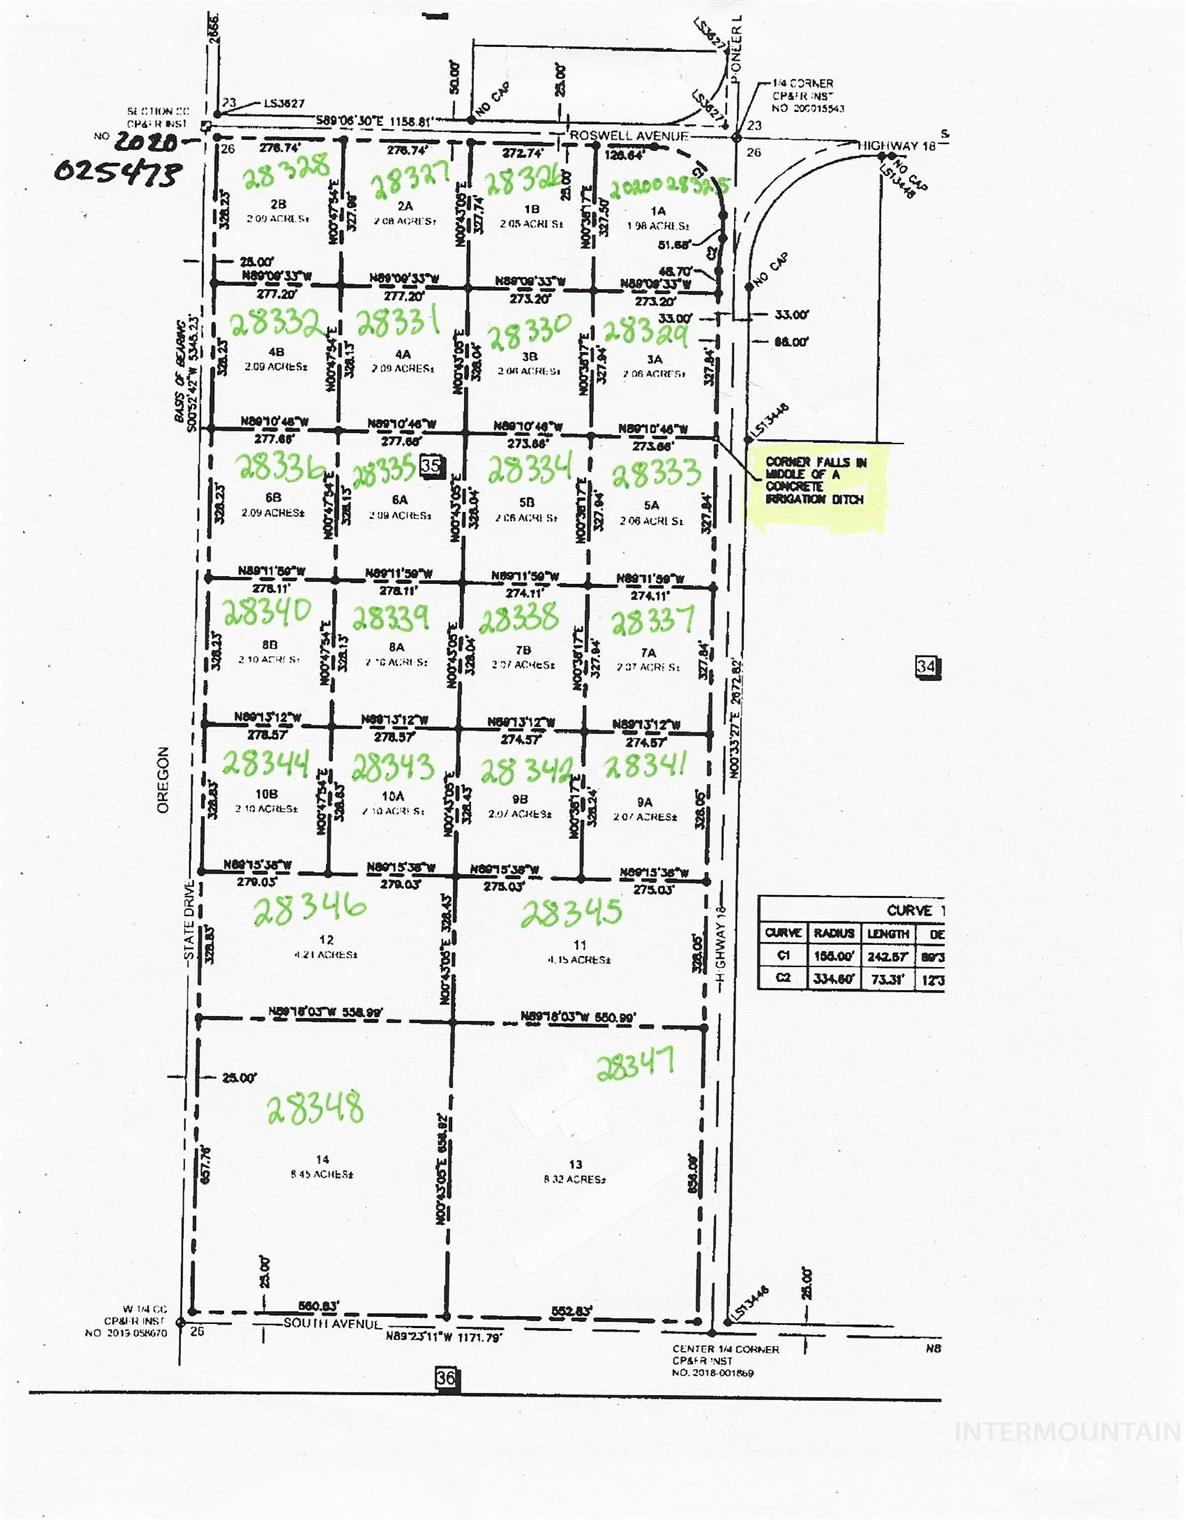 West Parcel Highway 18 (land Only) Property Photo